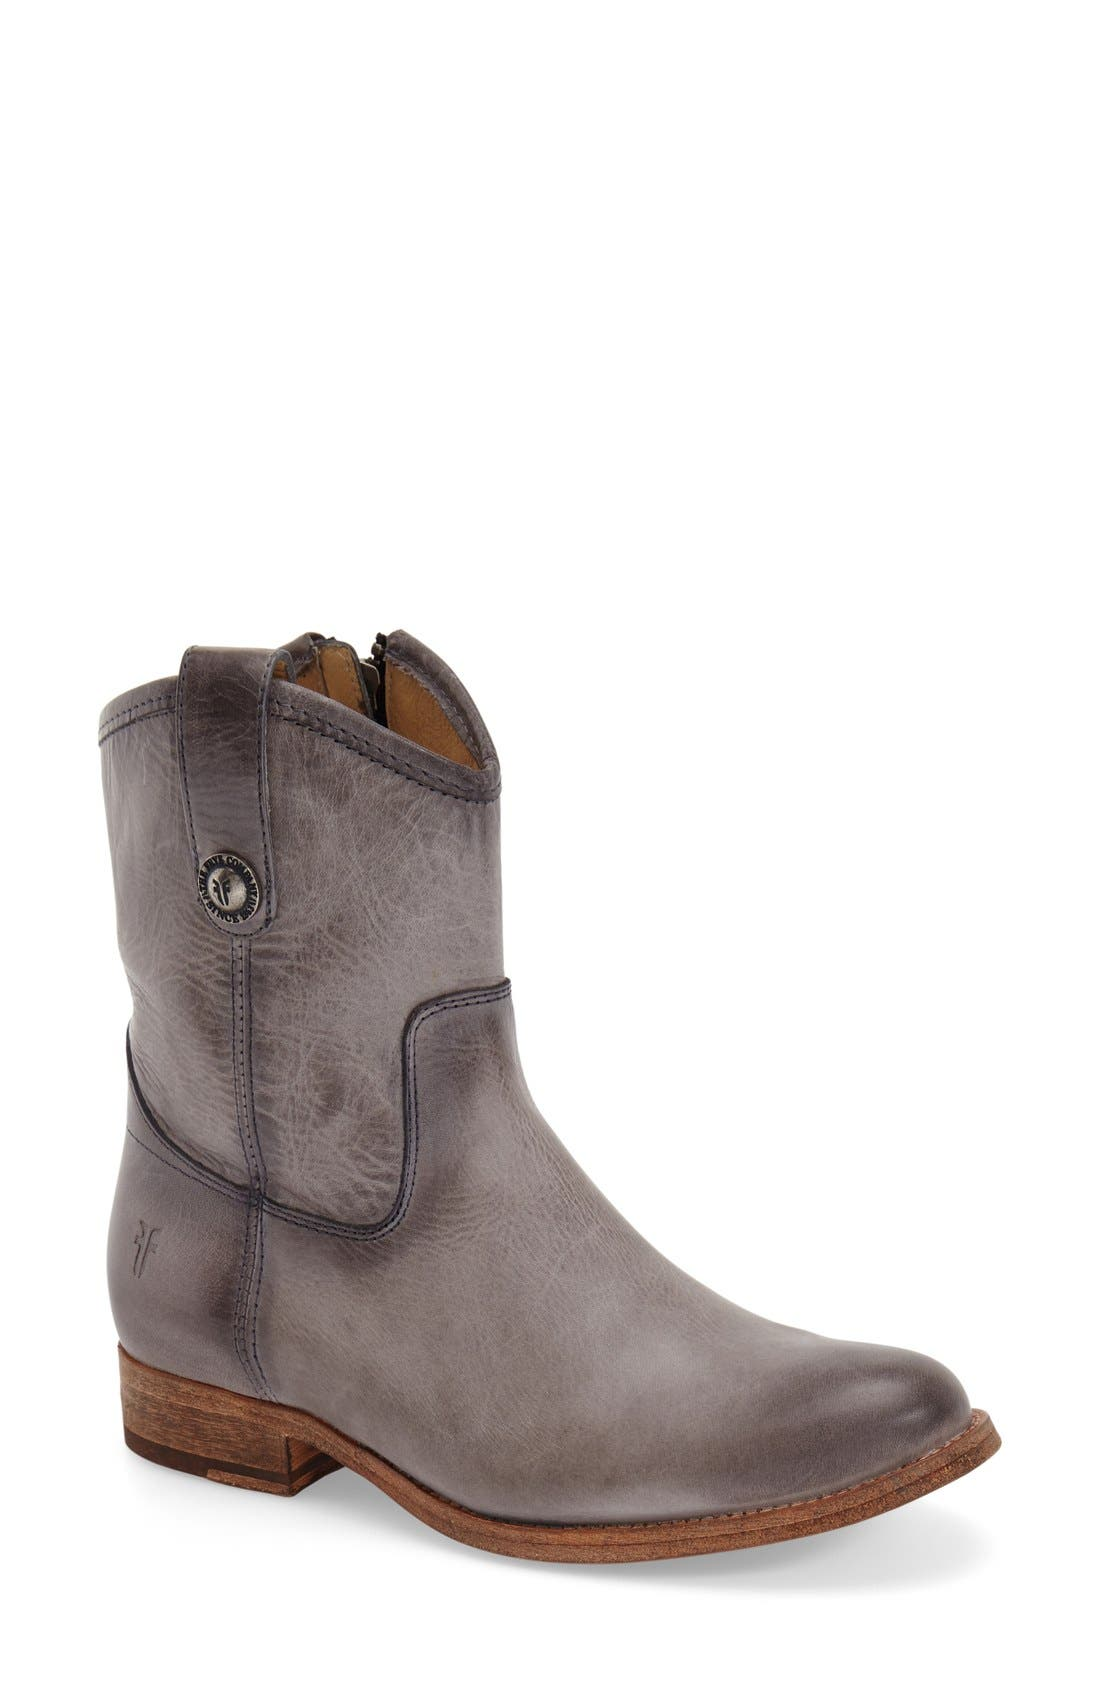 Main Image - Frye 'Melissa Button' Short Boot (Women)